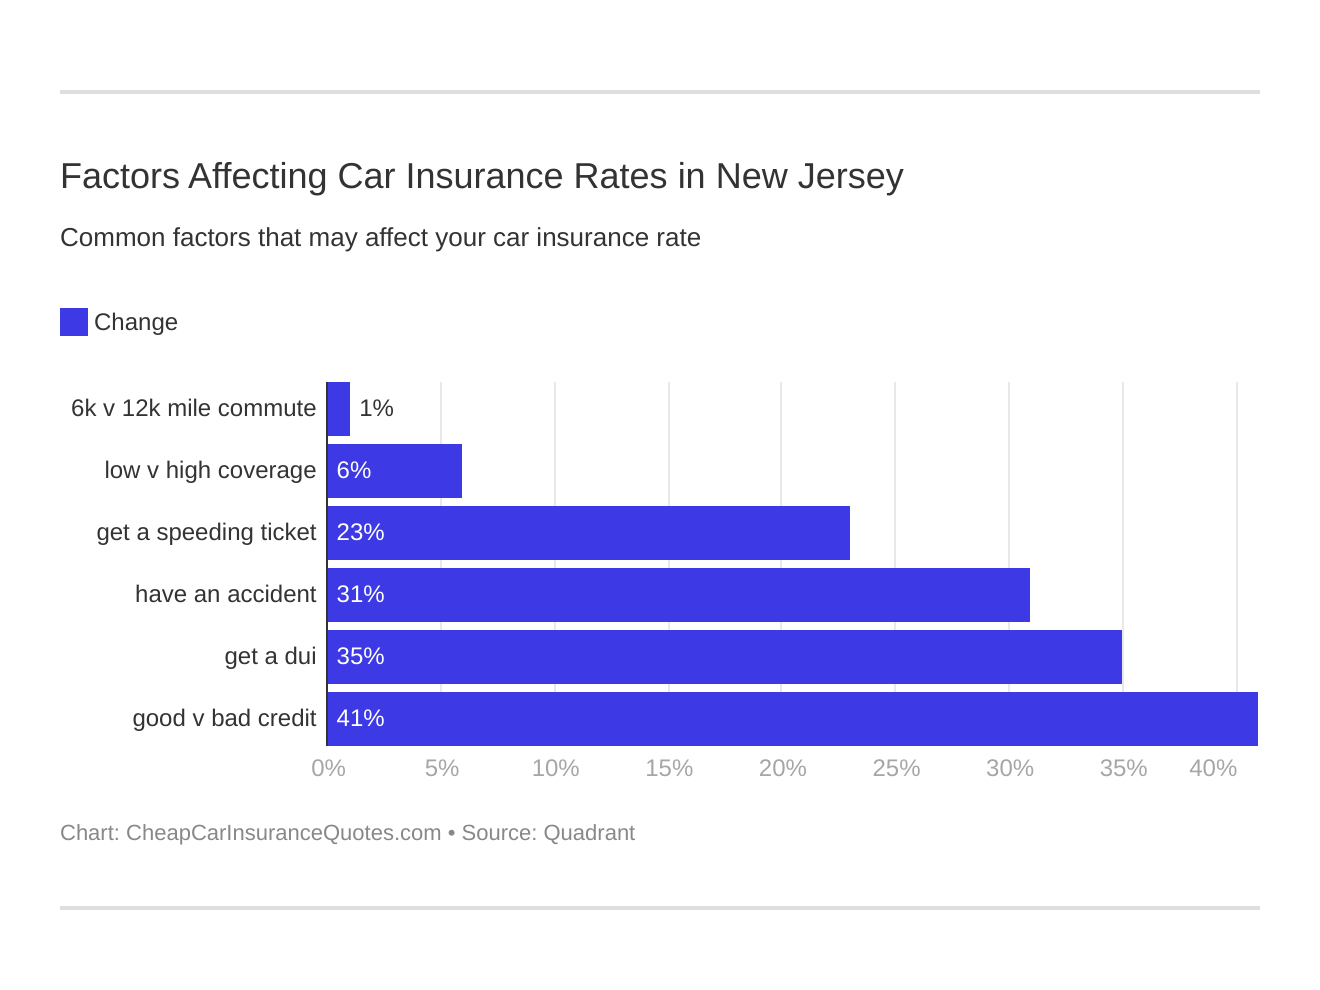 Factors Affecting Car Insurance Rates in New Jersey